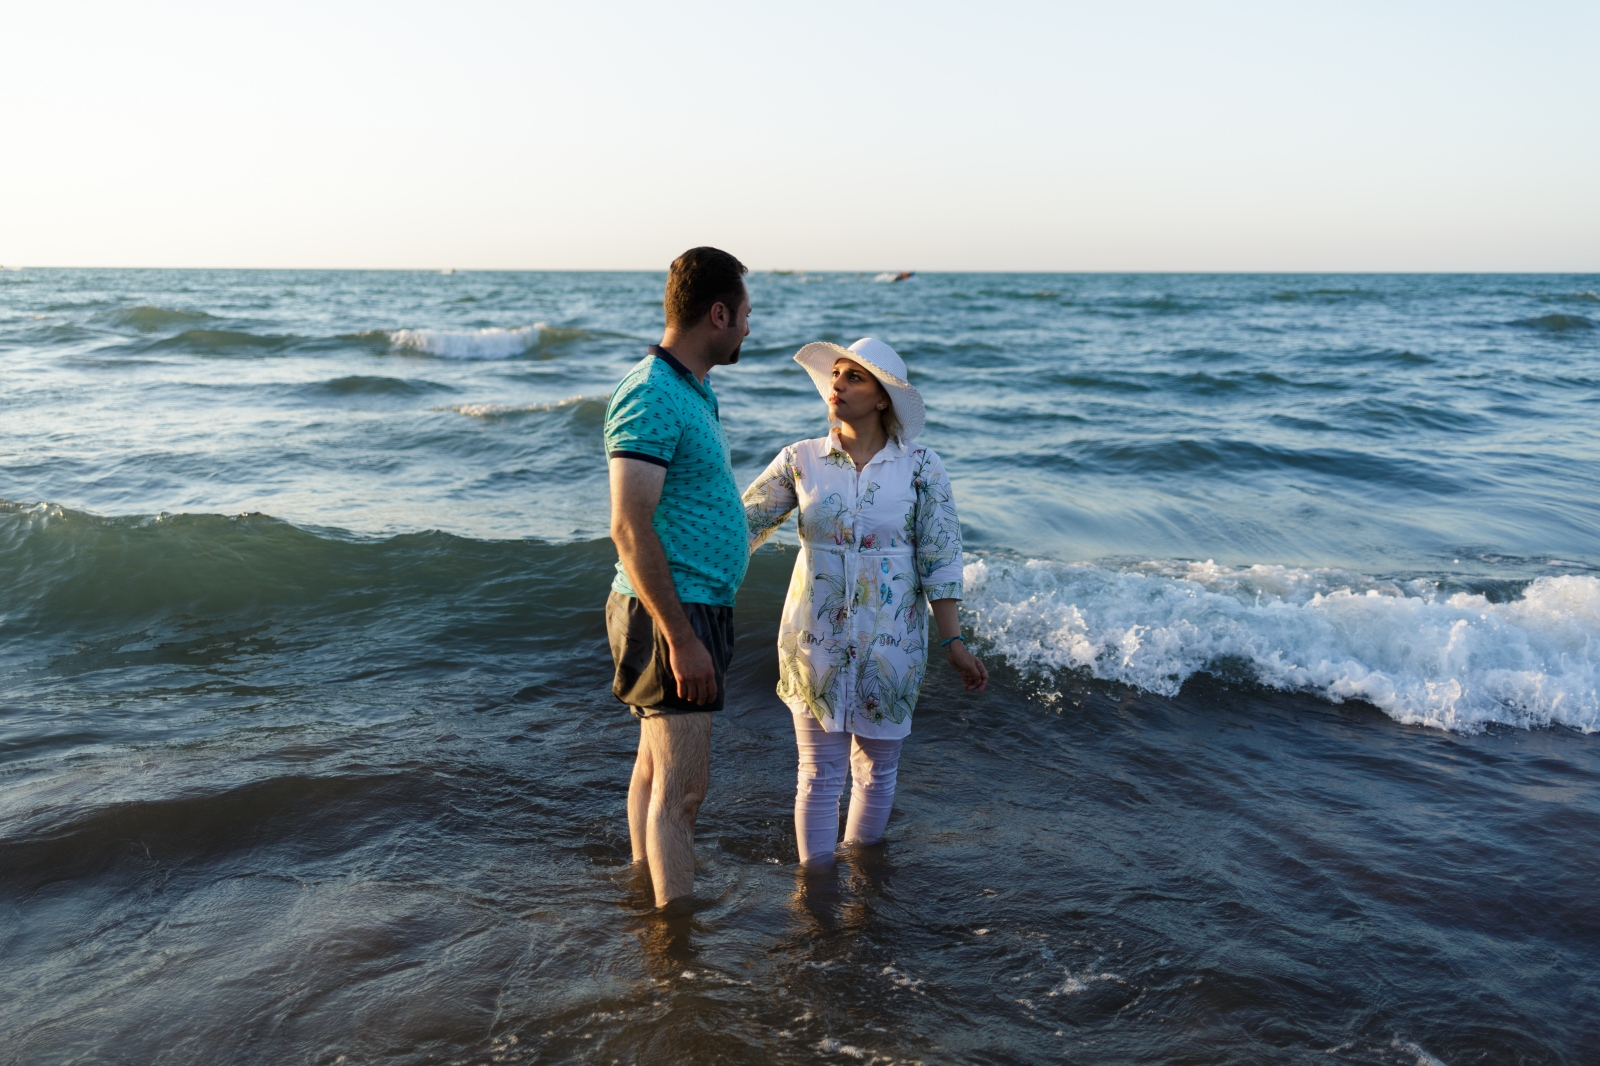 An iranian couple poses for a picture in the caspian sea.